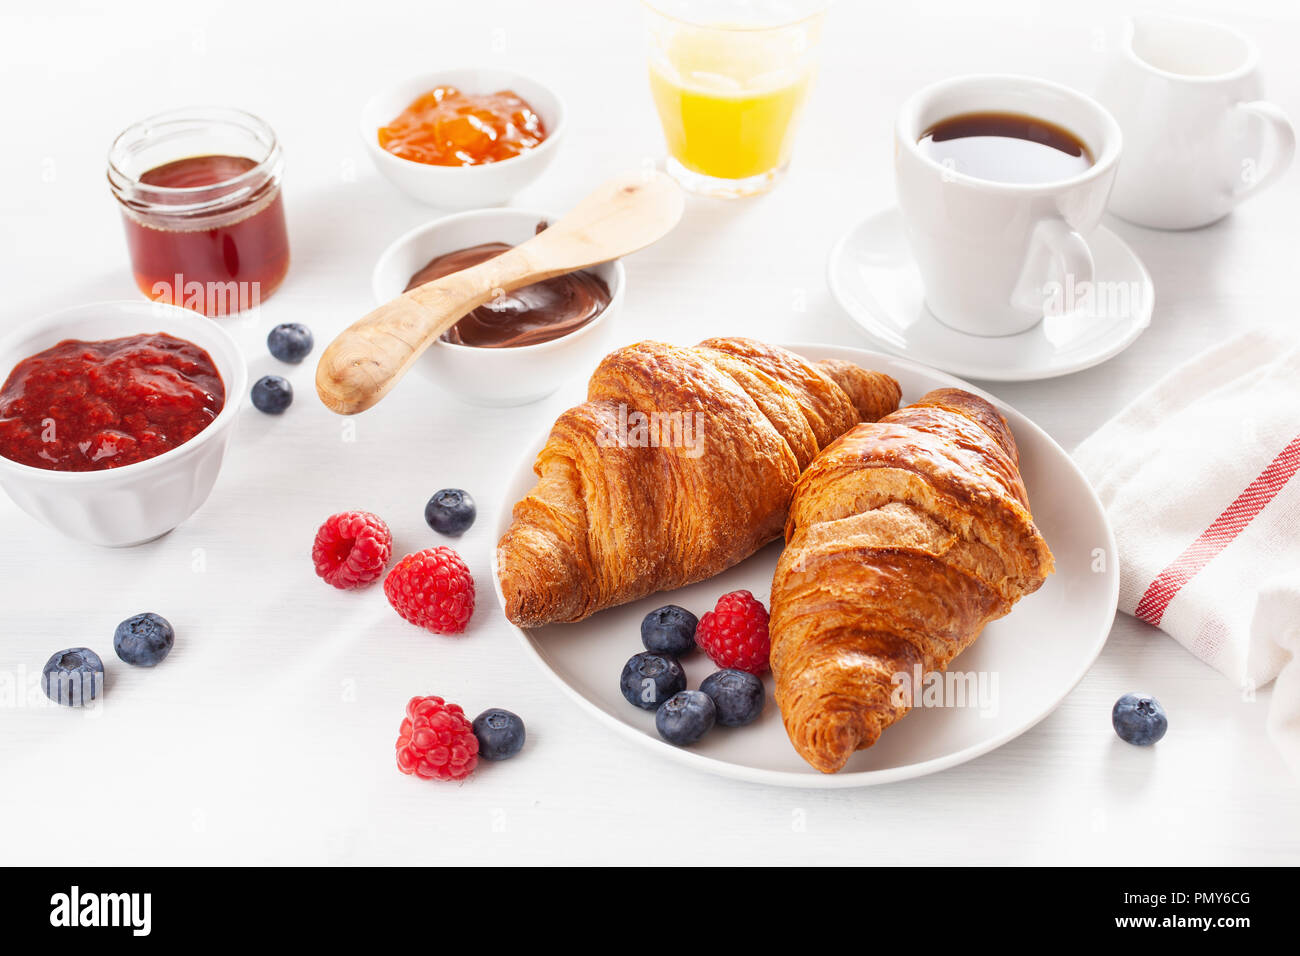 Continental breakfast with croissant, jam, chocolate spread and coffee - Stock Image